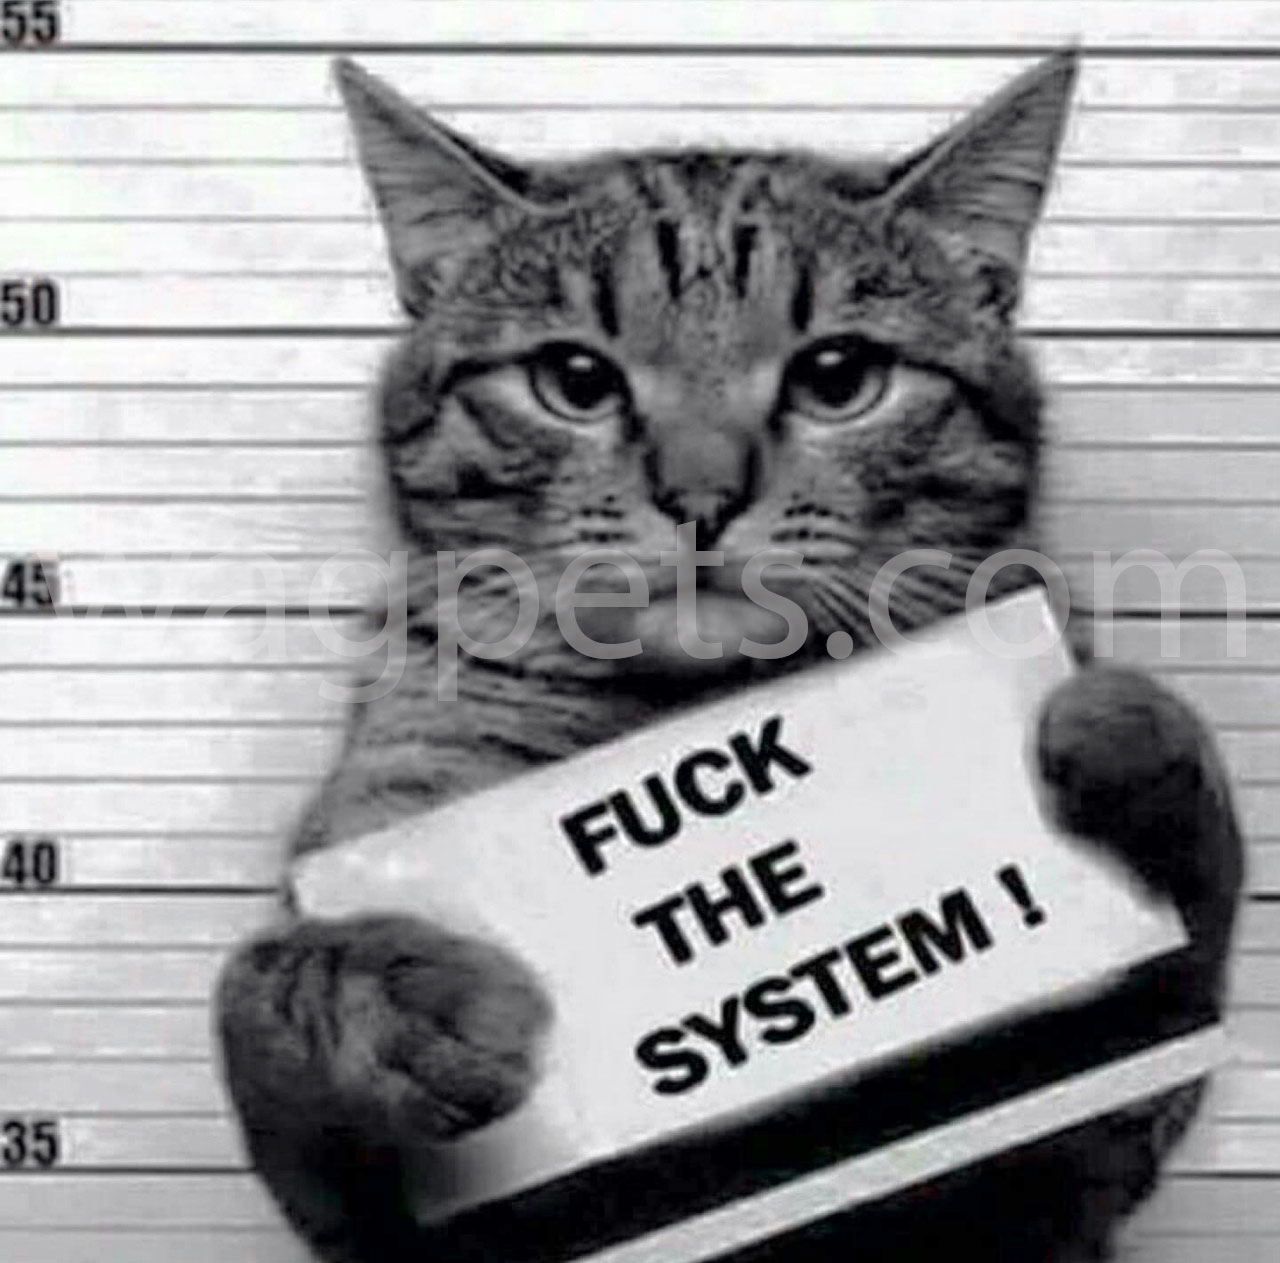 Fuck the system!